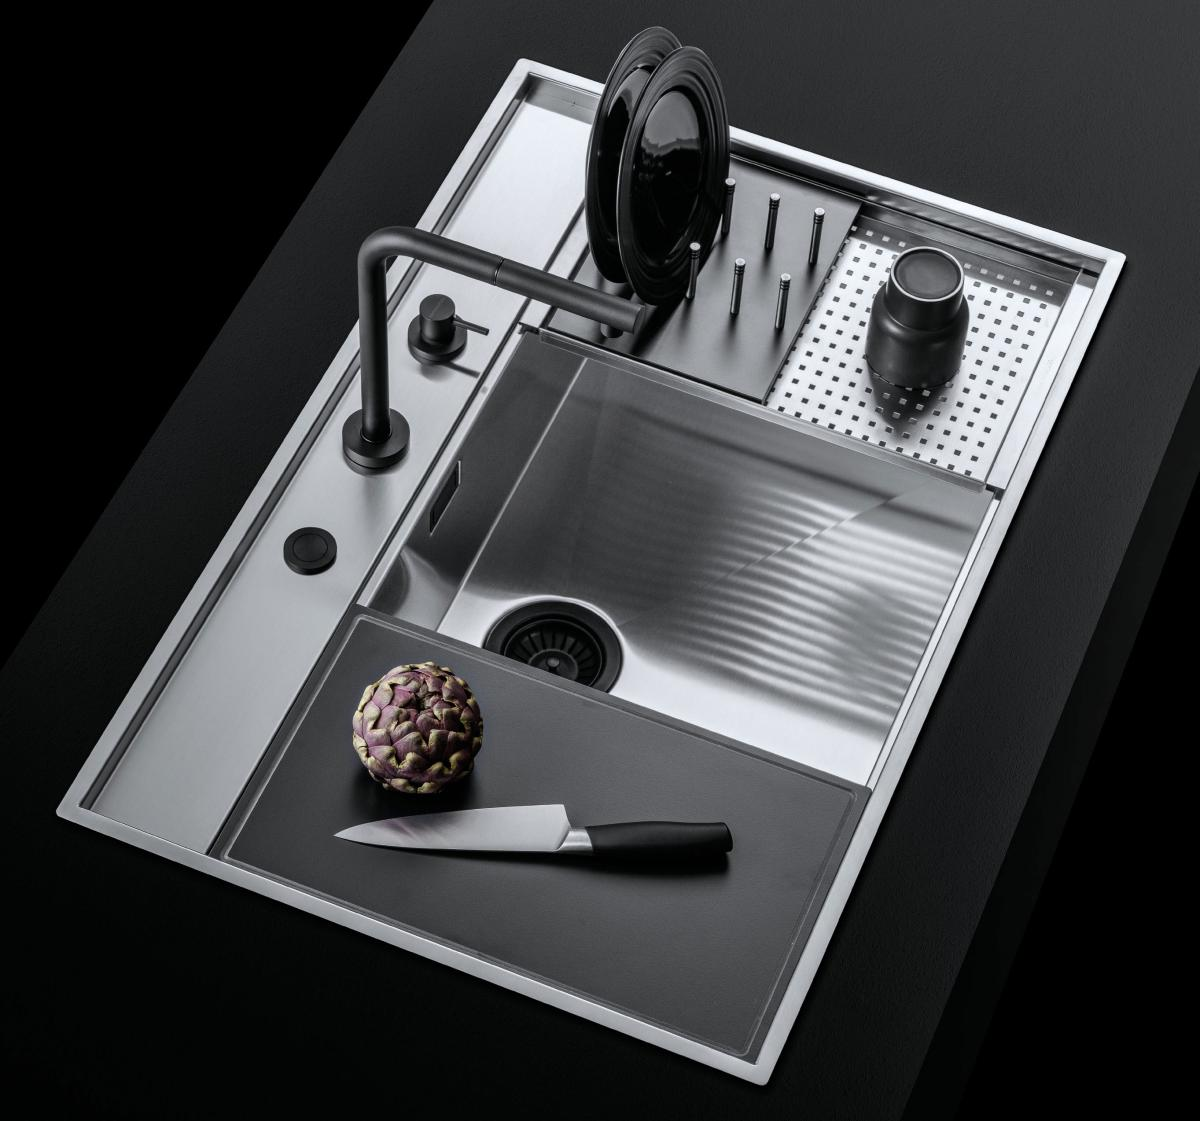 FLEXI SINKS. GIVING DEPTH TO EVERYTHING YOU DO.